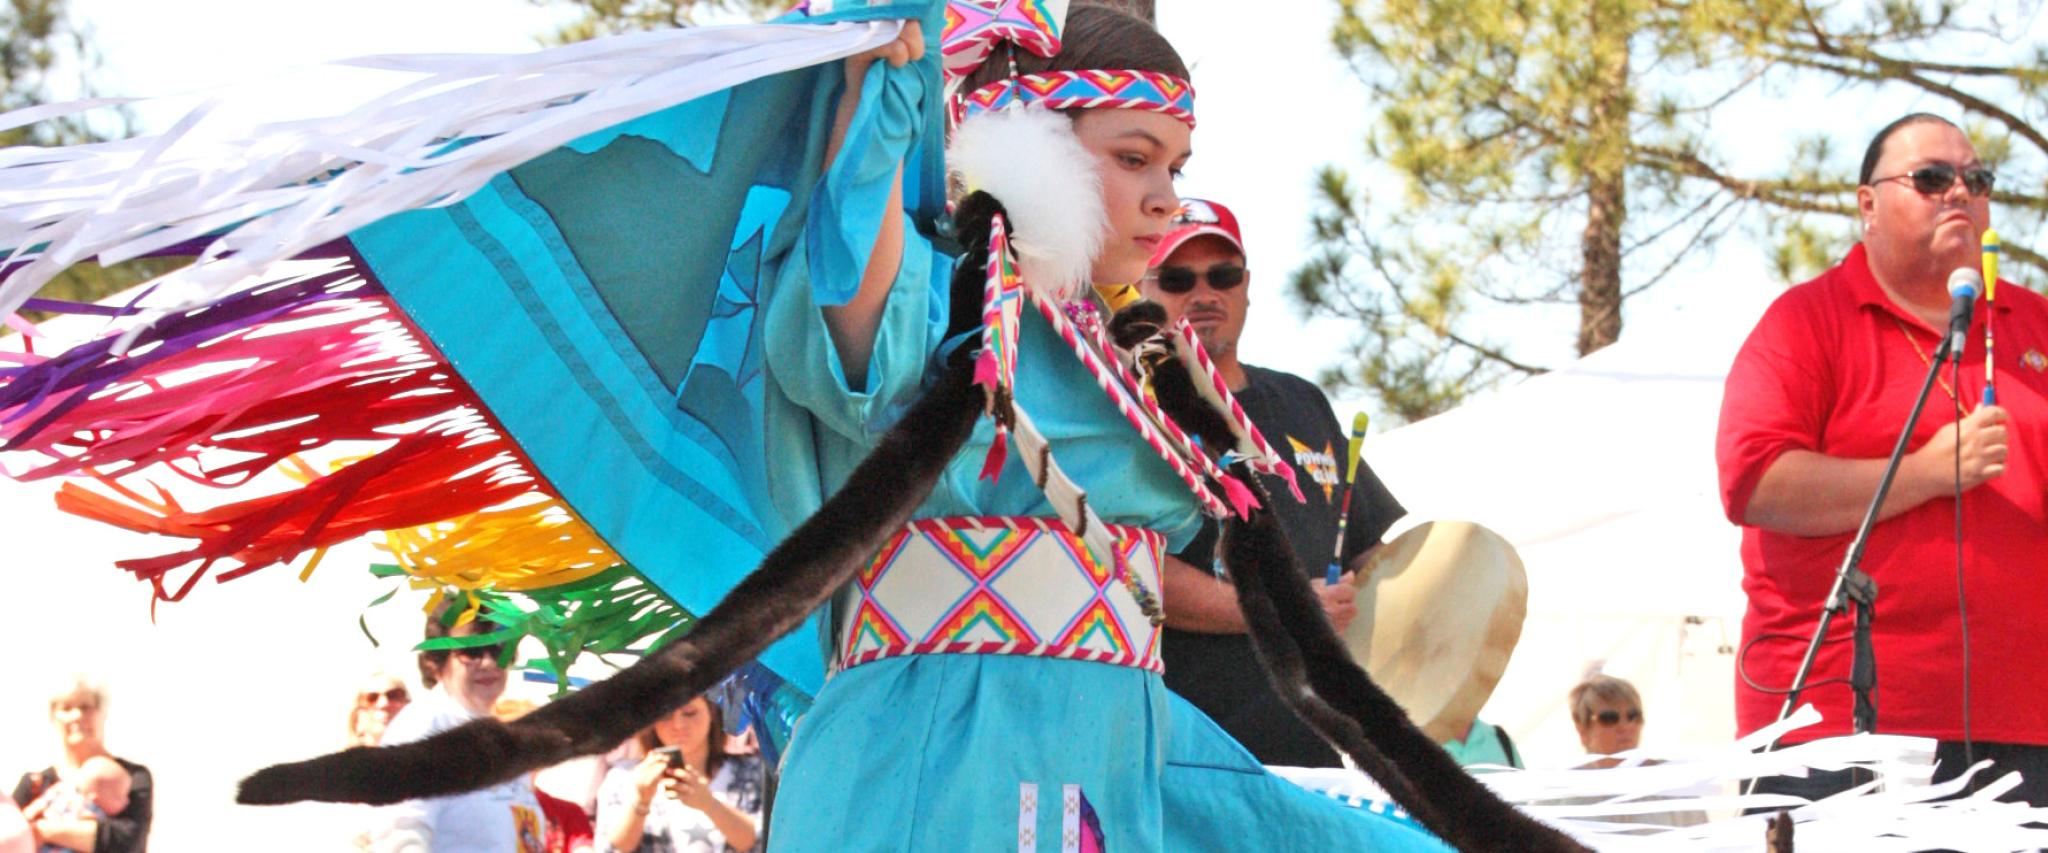 Native American Dancer at Ballyhoo Festival